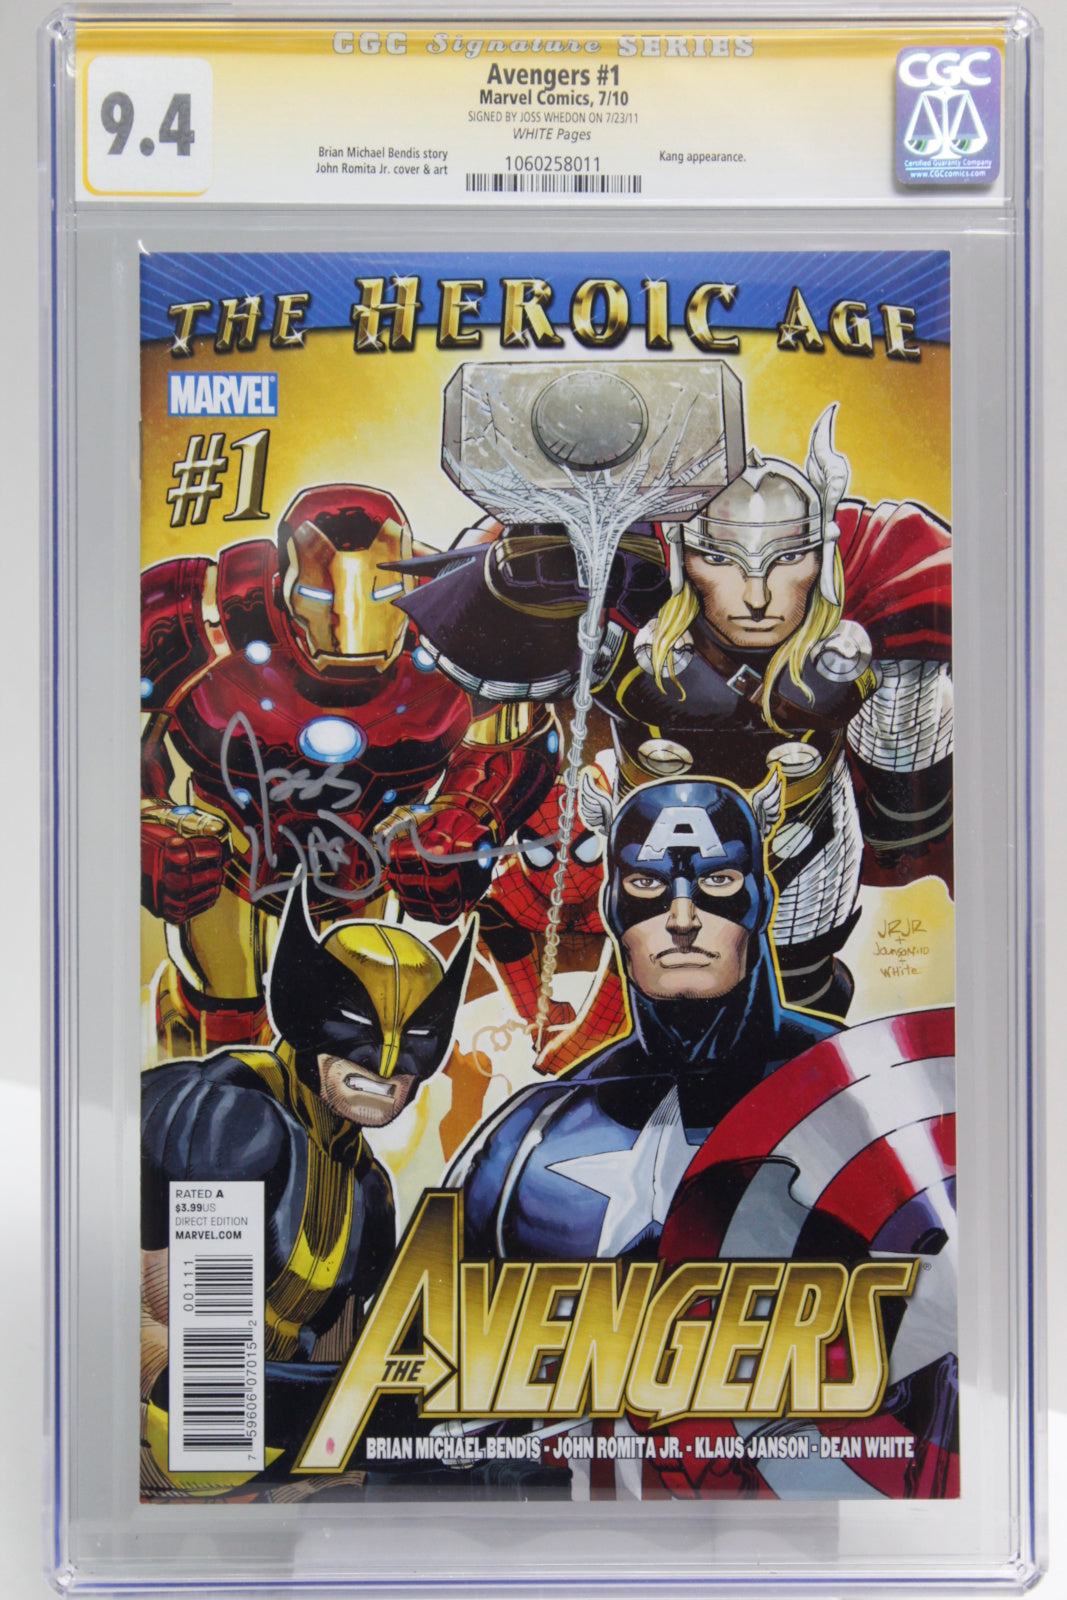 Avengers #1 - SIGNED BY JOSS WHEDON, CGC 9.4, Sig Series